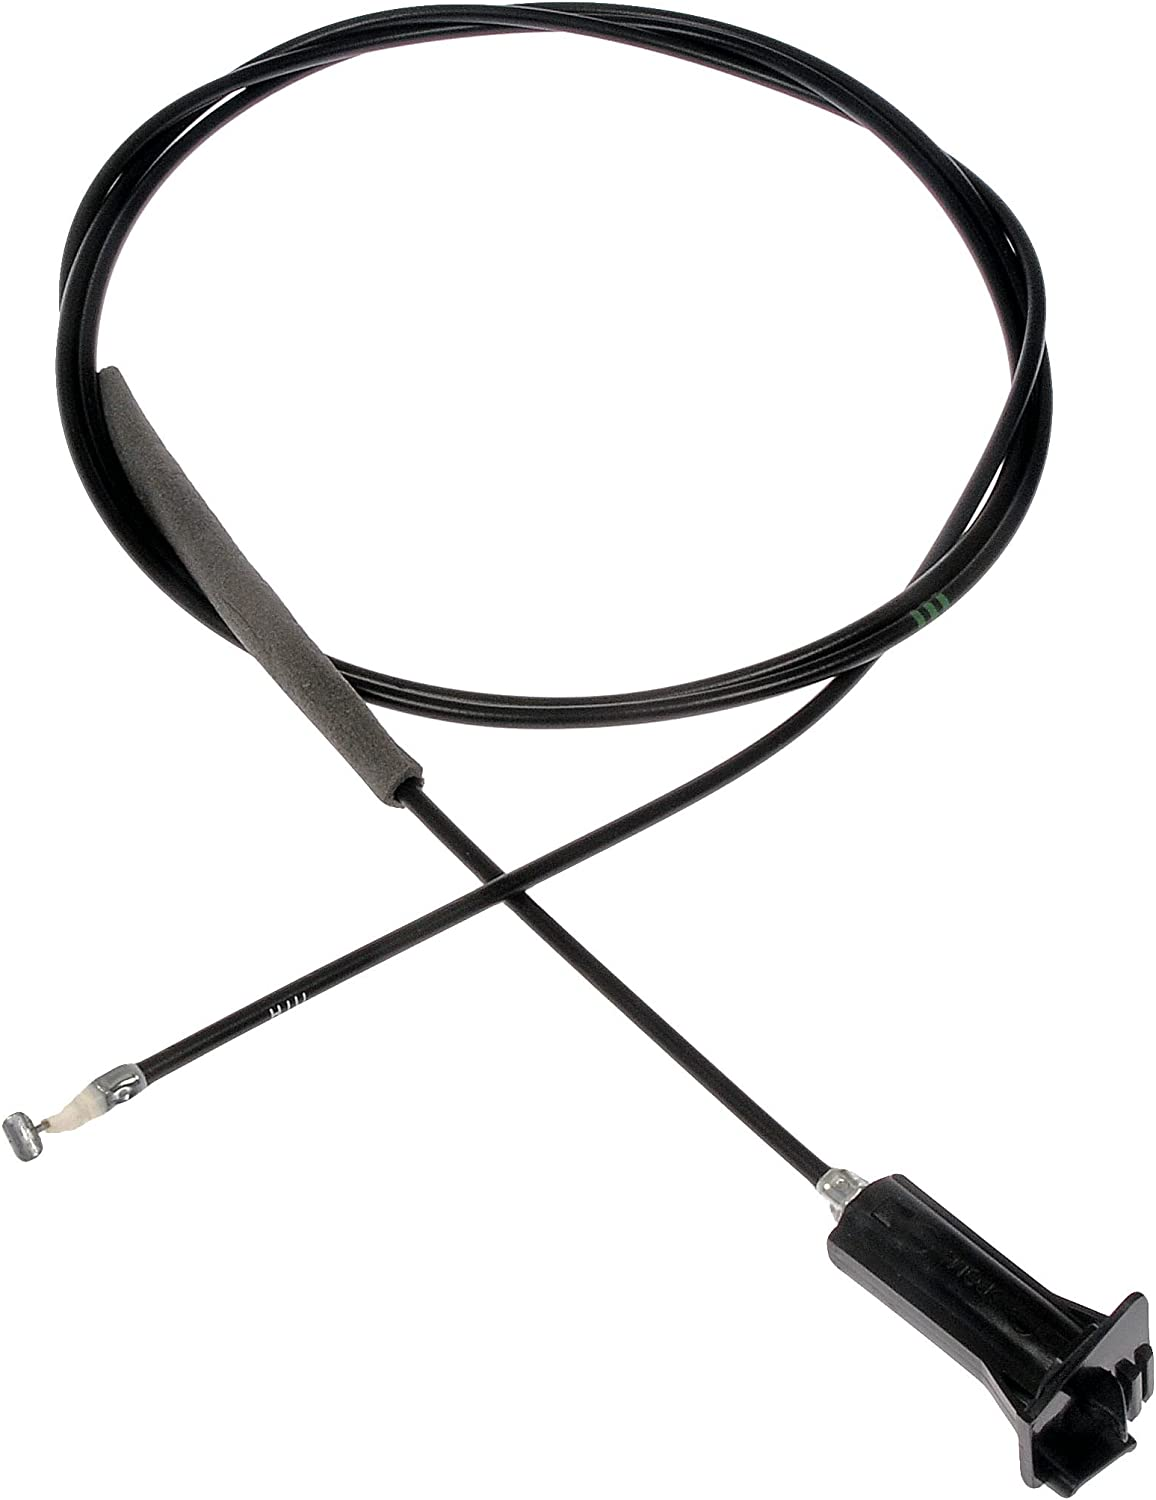 Dorman 912-152 Fuel Door Release Cable